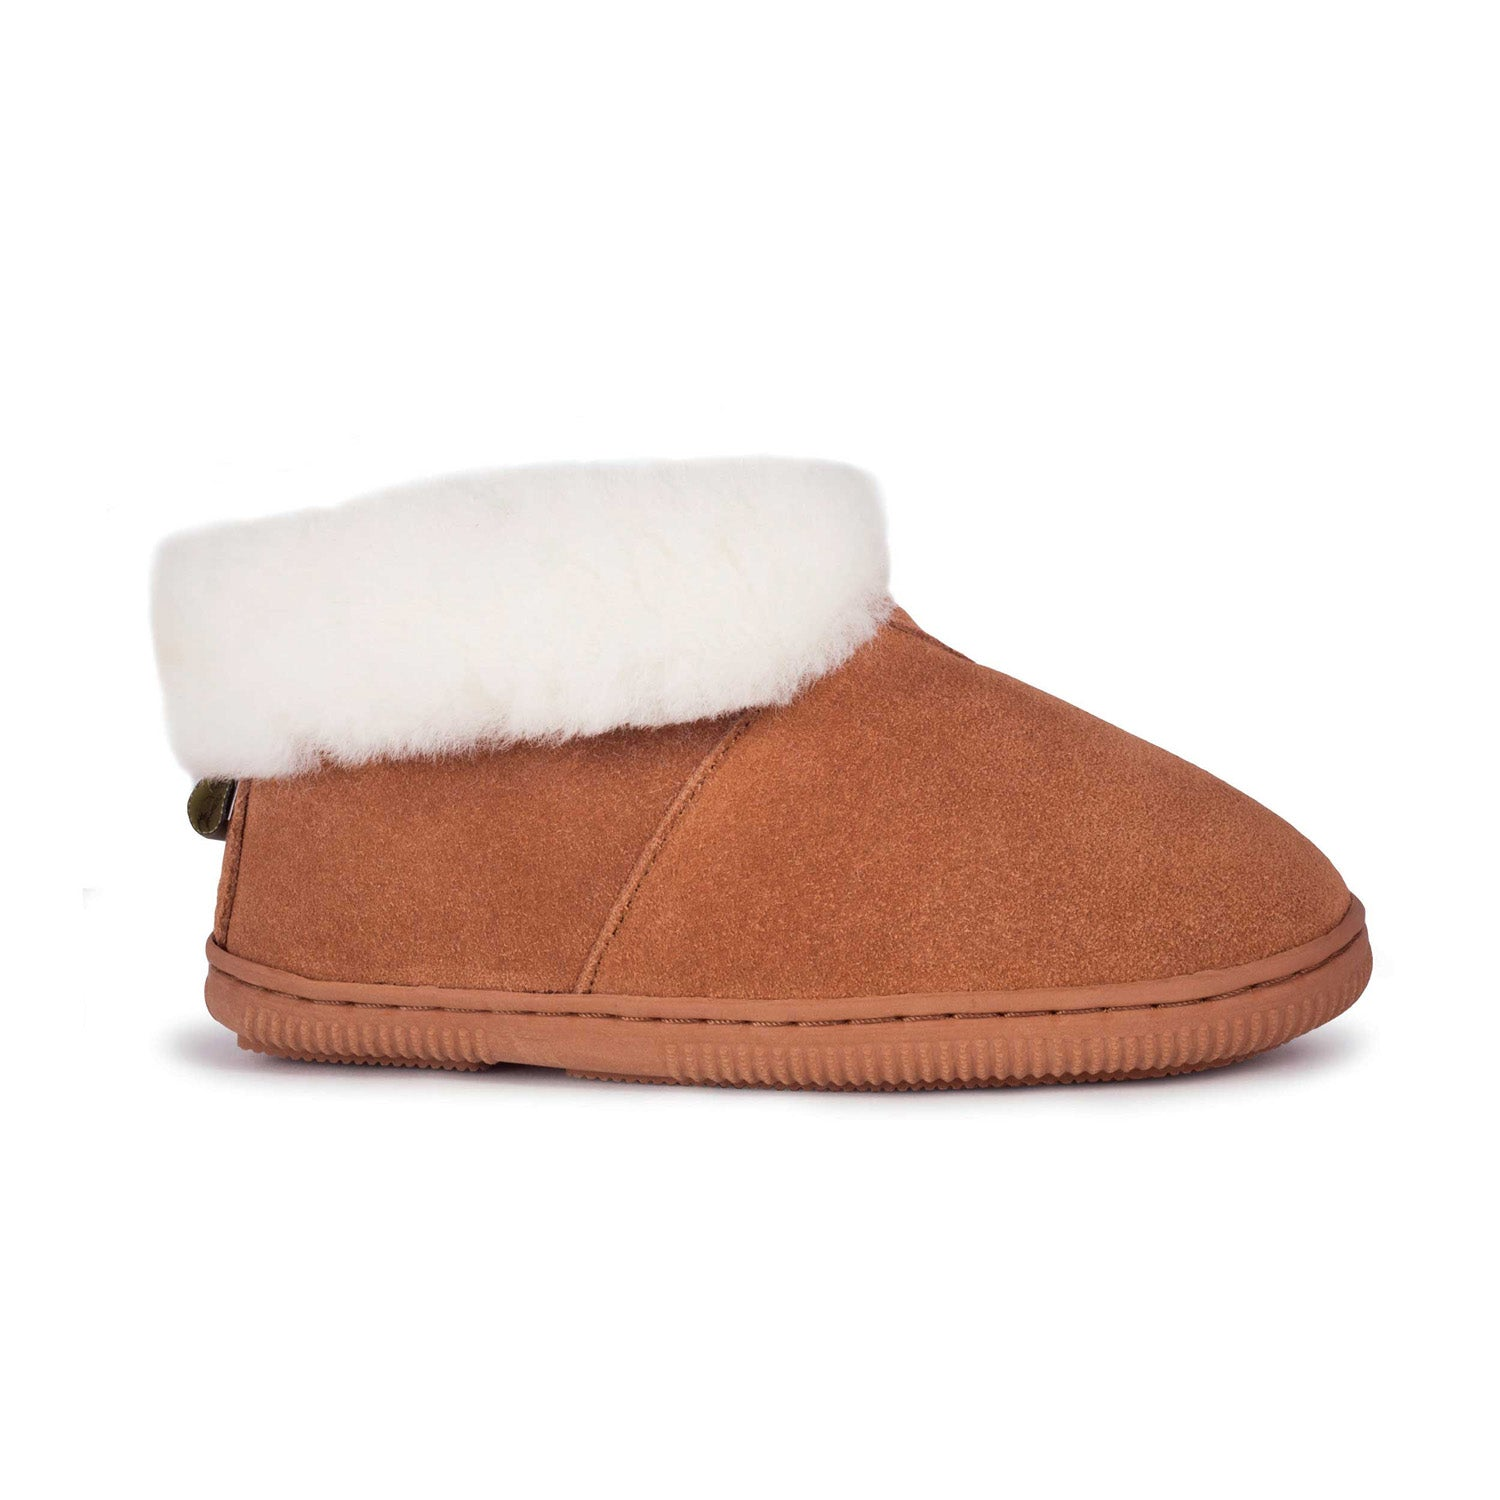 KID'S SHEEPSKIN BOOTIES - Cloud Nine Sheepskin